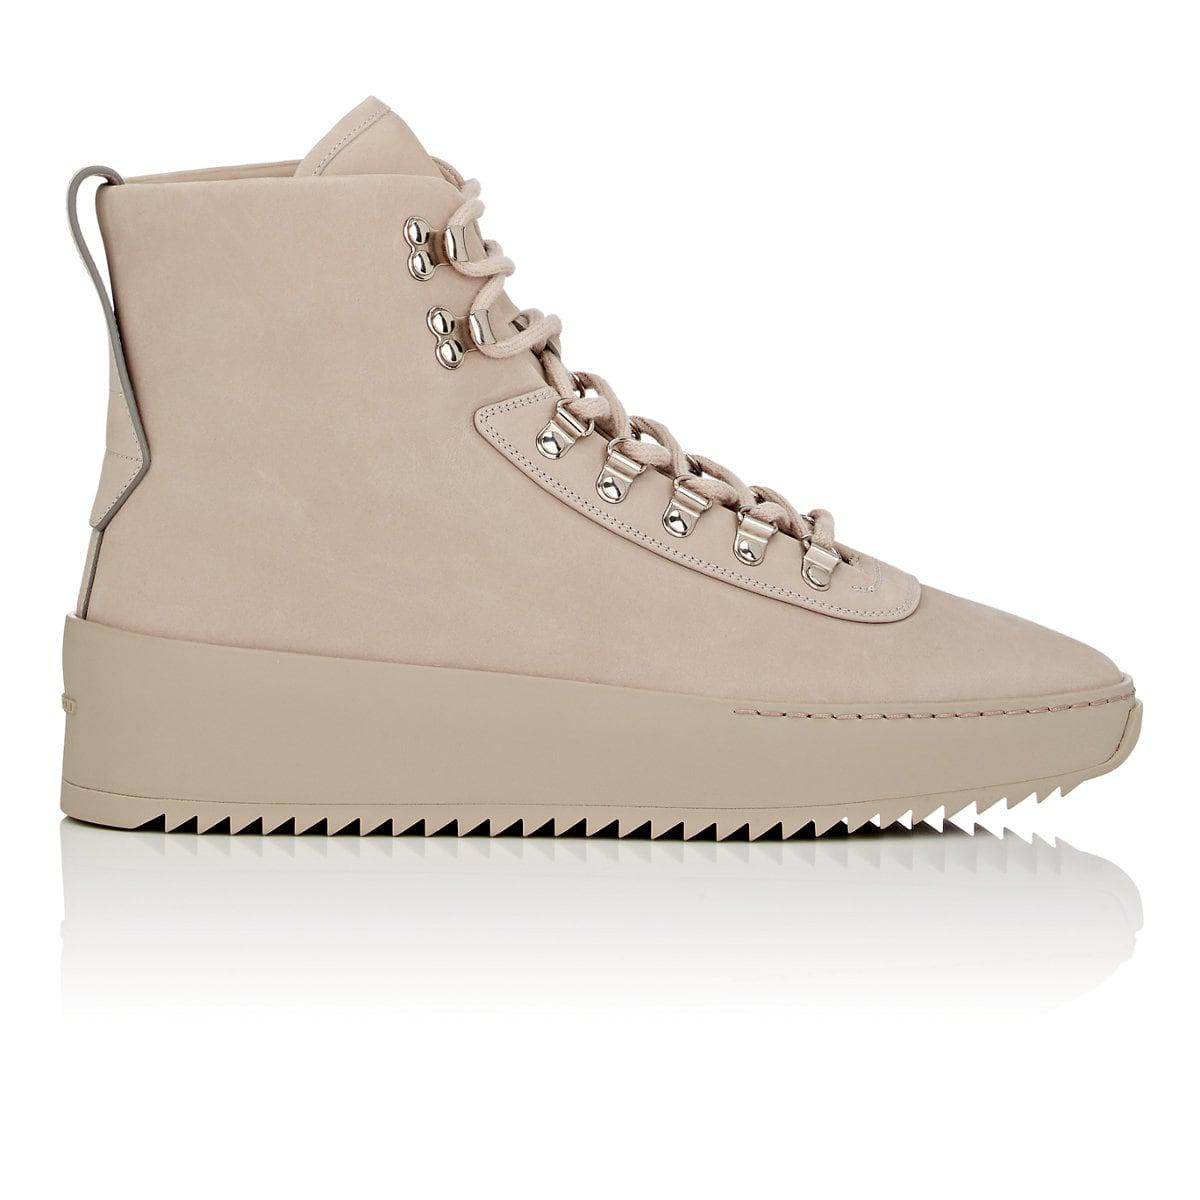 FEAR OF GODNubuck Leather Hiking Sneakers in . 62YiM4dof